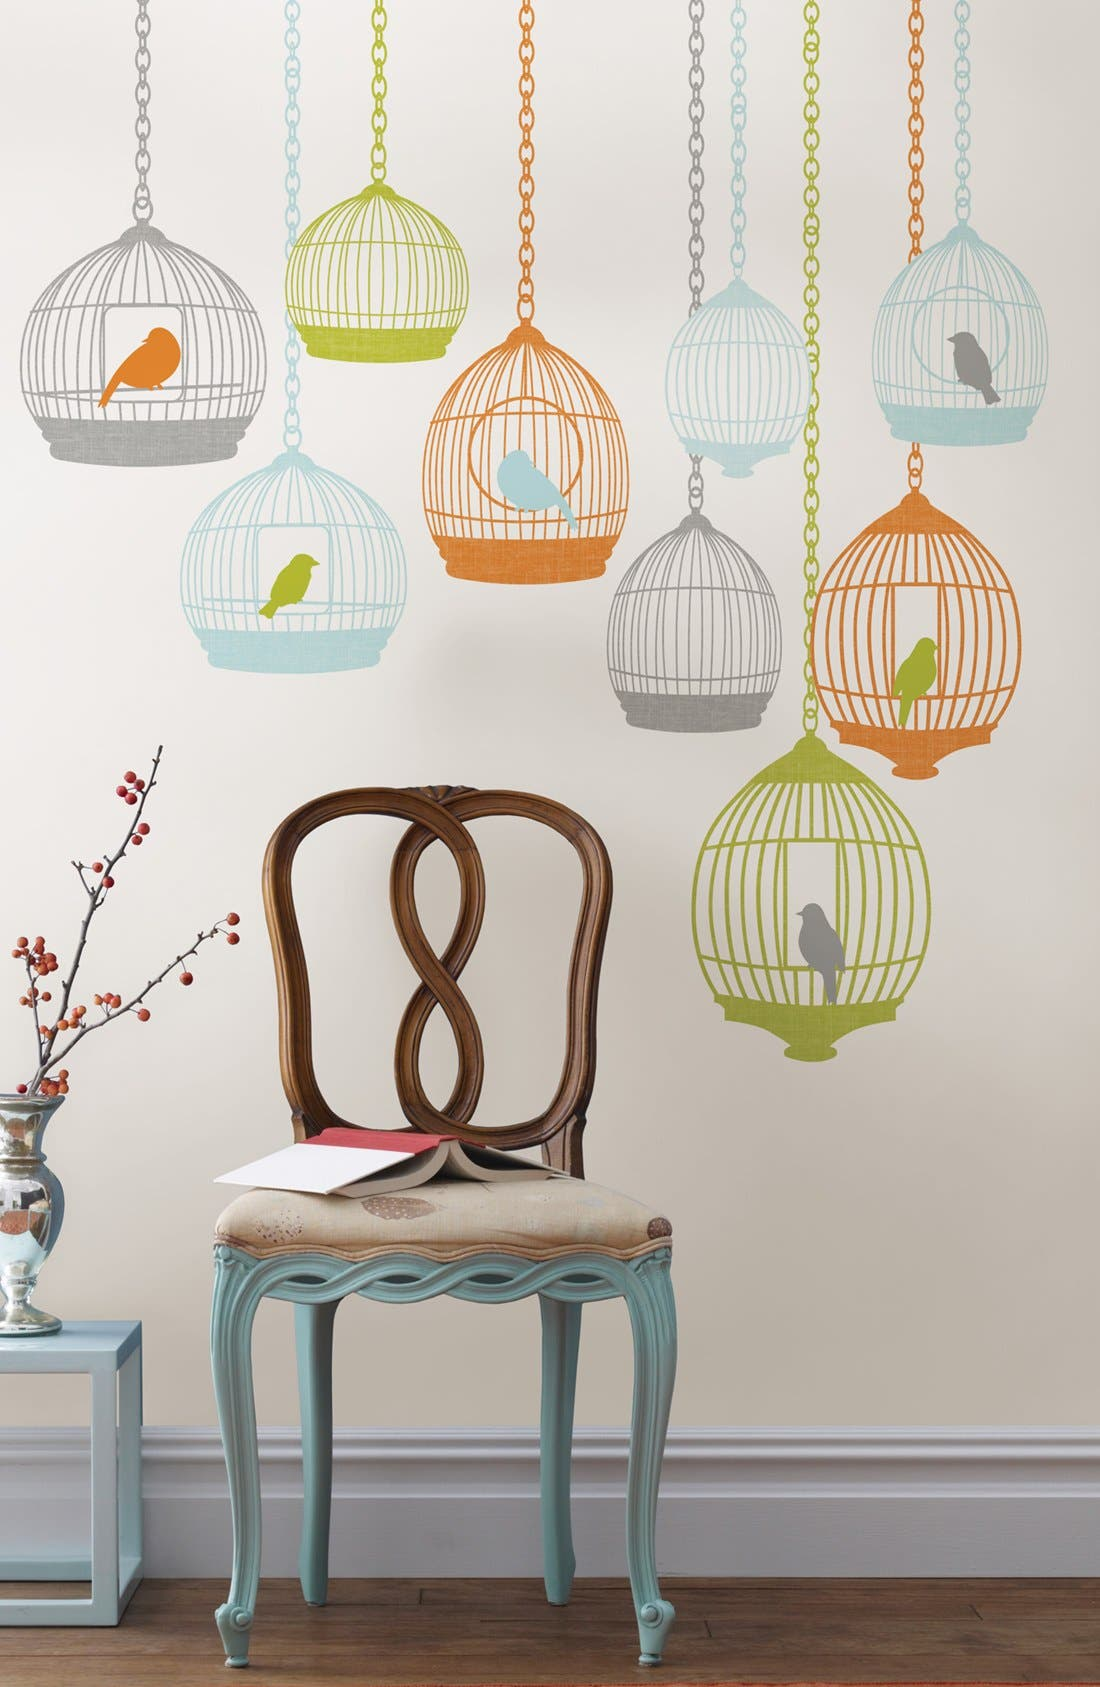 Main Image - Wallpops Birdcage Wall Art